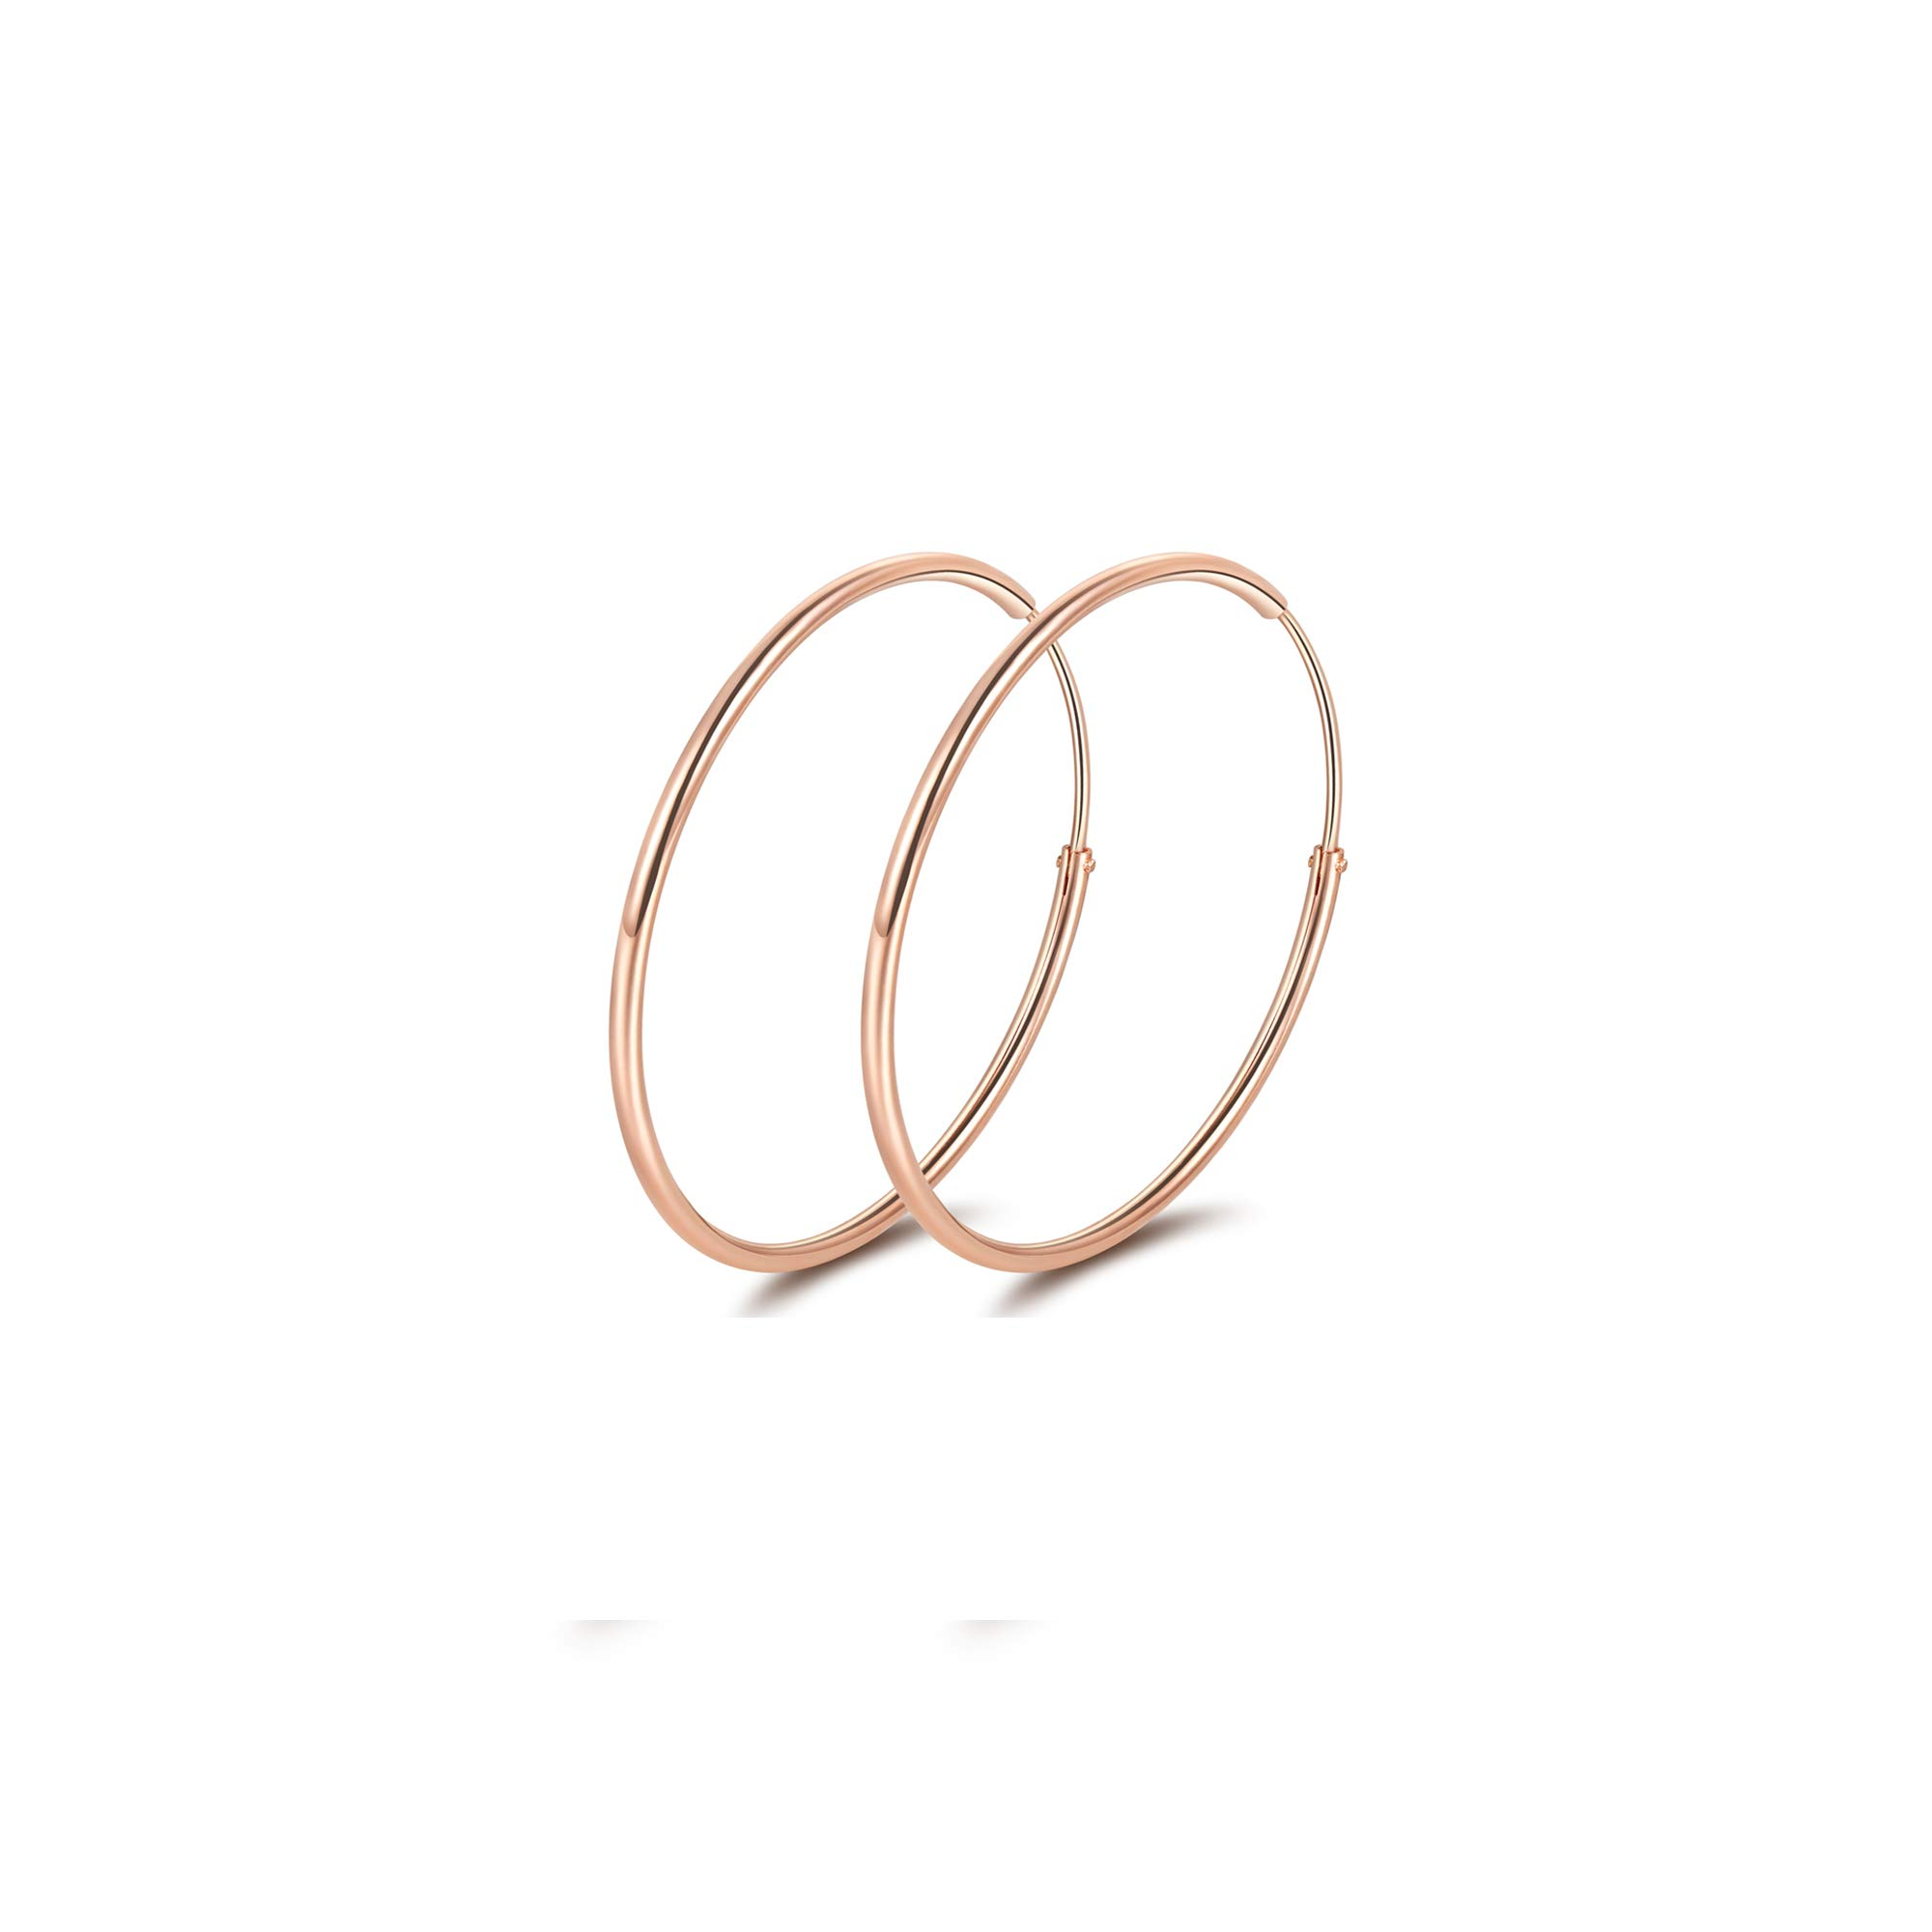 Sterling Silver Circle Endless Hoop Earrings,18K Rose Gold Plated High Polished Thin Hoops Earrings for Women (30mm)